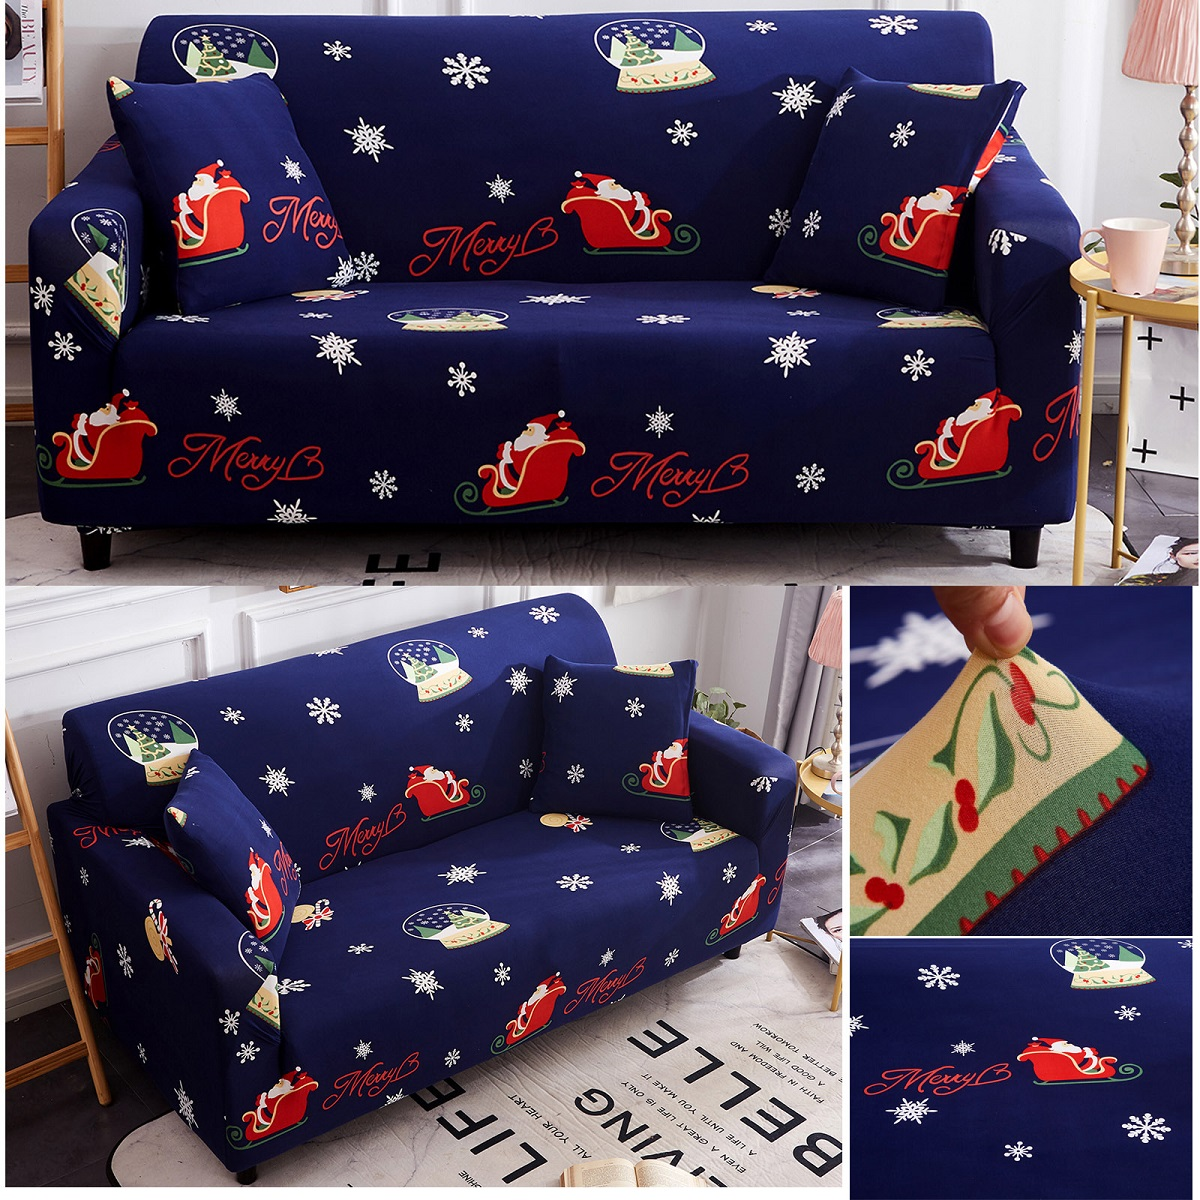 3/4 seater stretch sofa covers couch cover elastic slipcover protector christmas